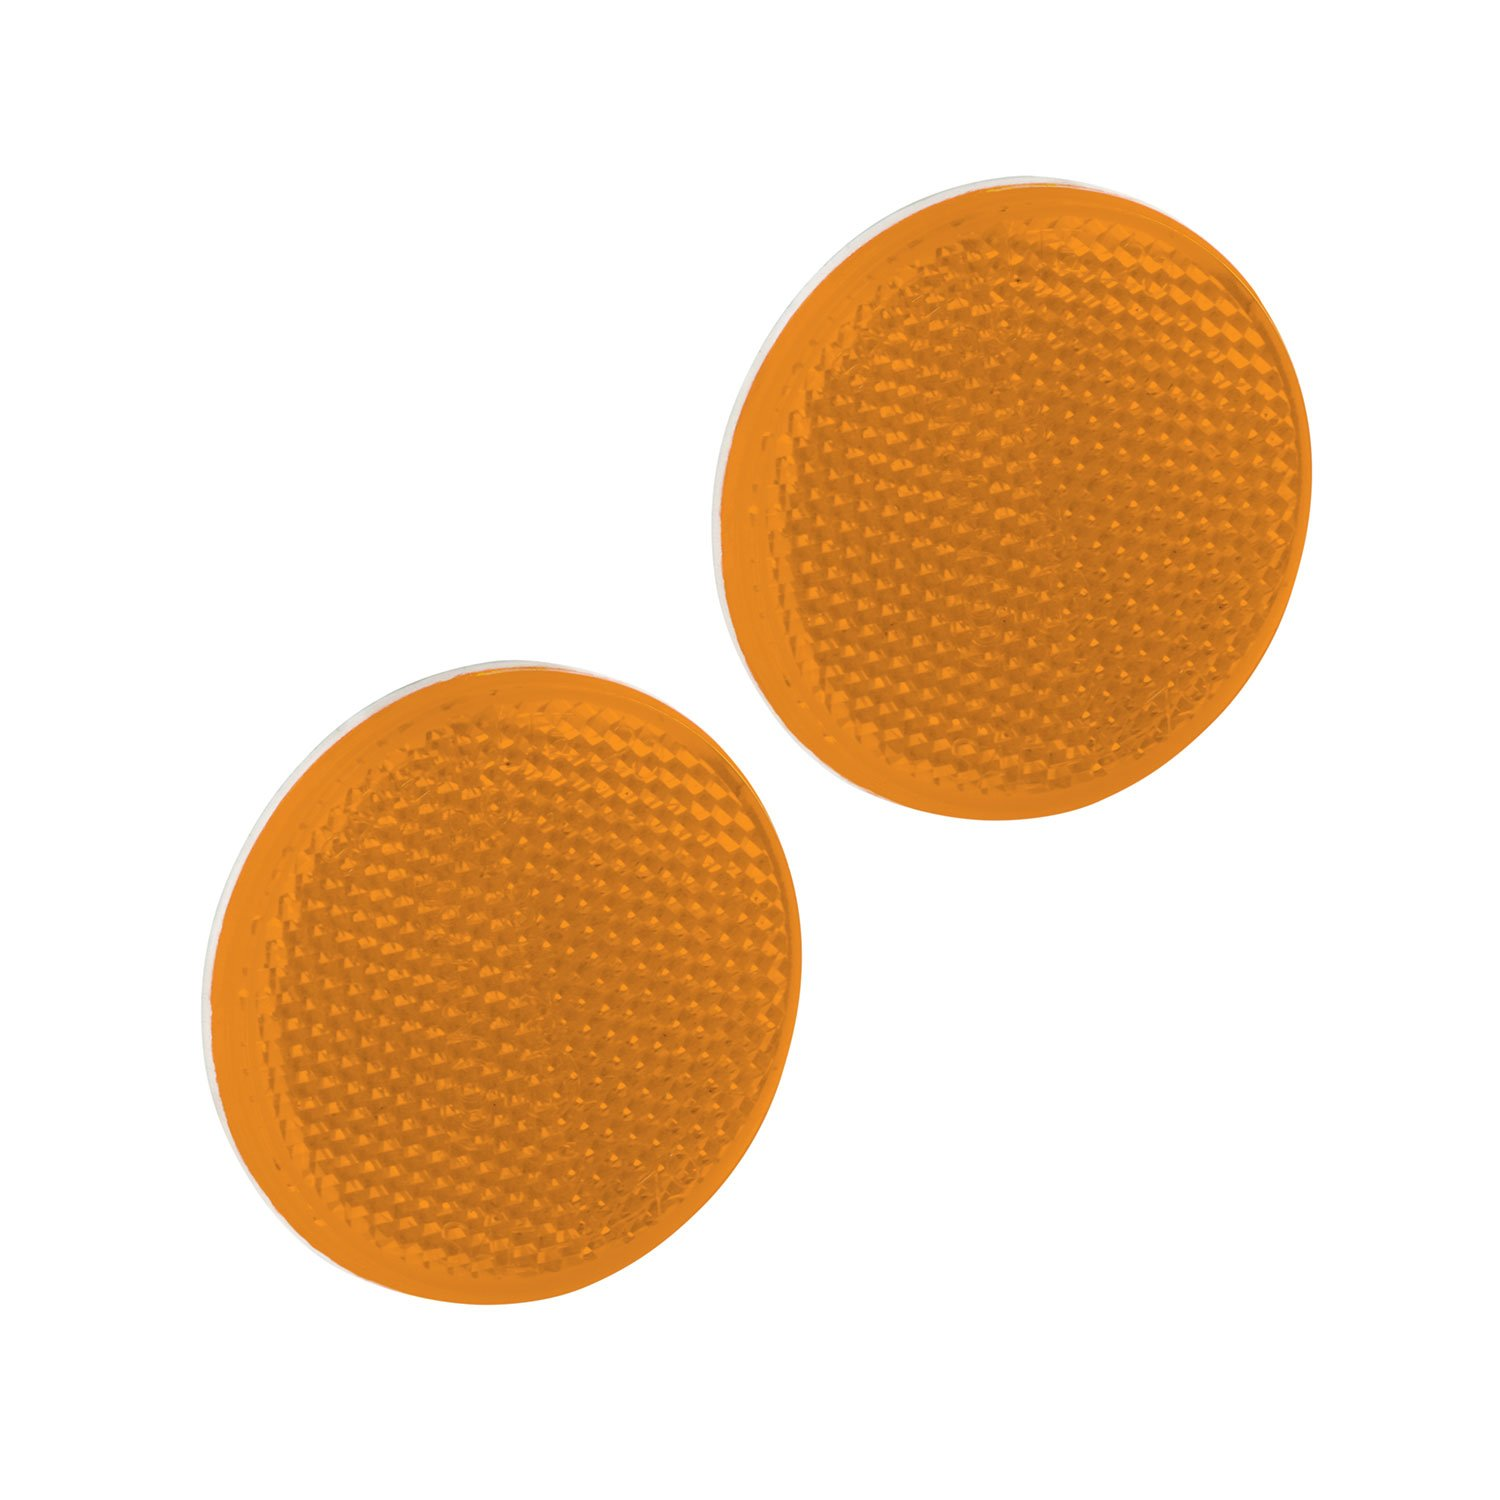 Bargman 74-55-020 Reflector (Class A 2-3/16' Round Amber with Adhesive Back - 2 Pack)